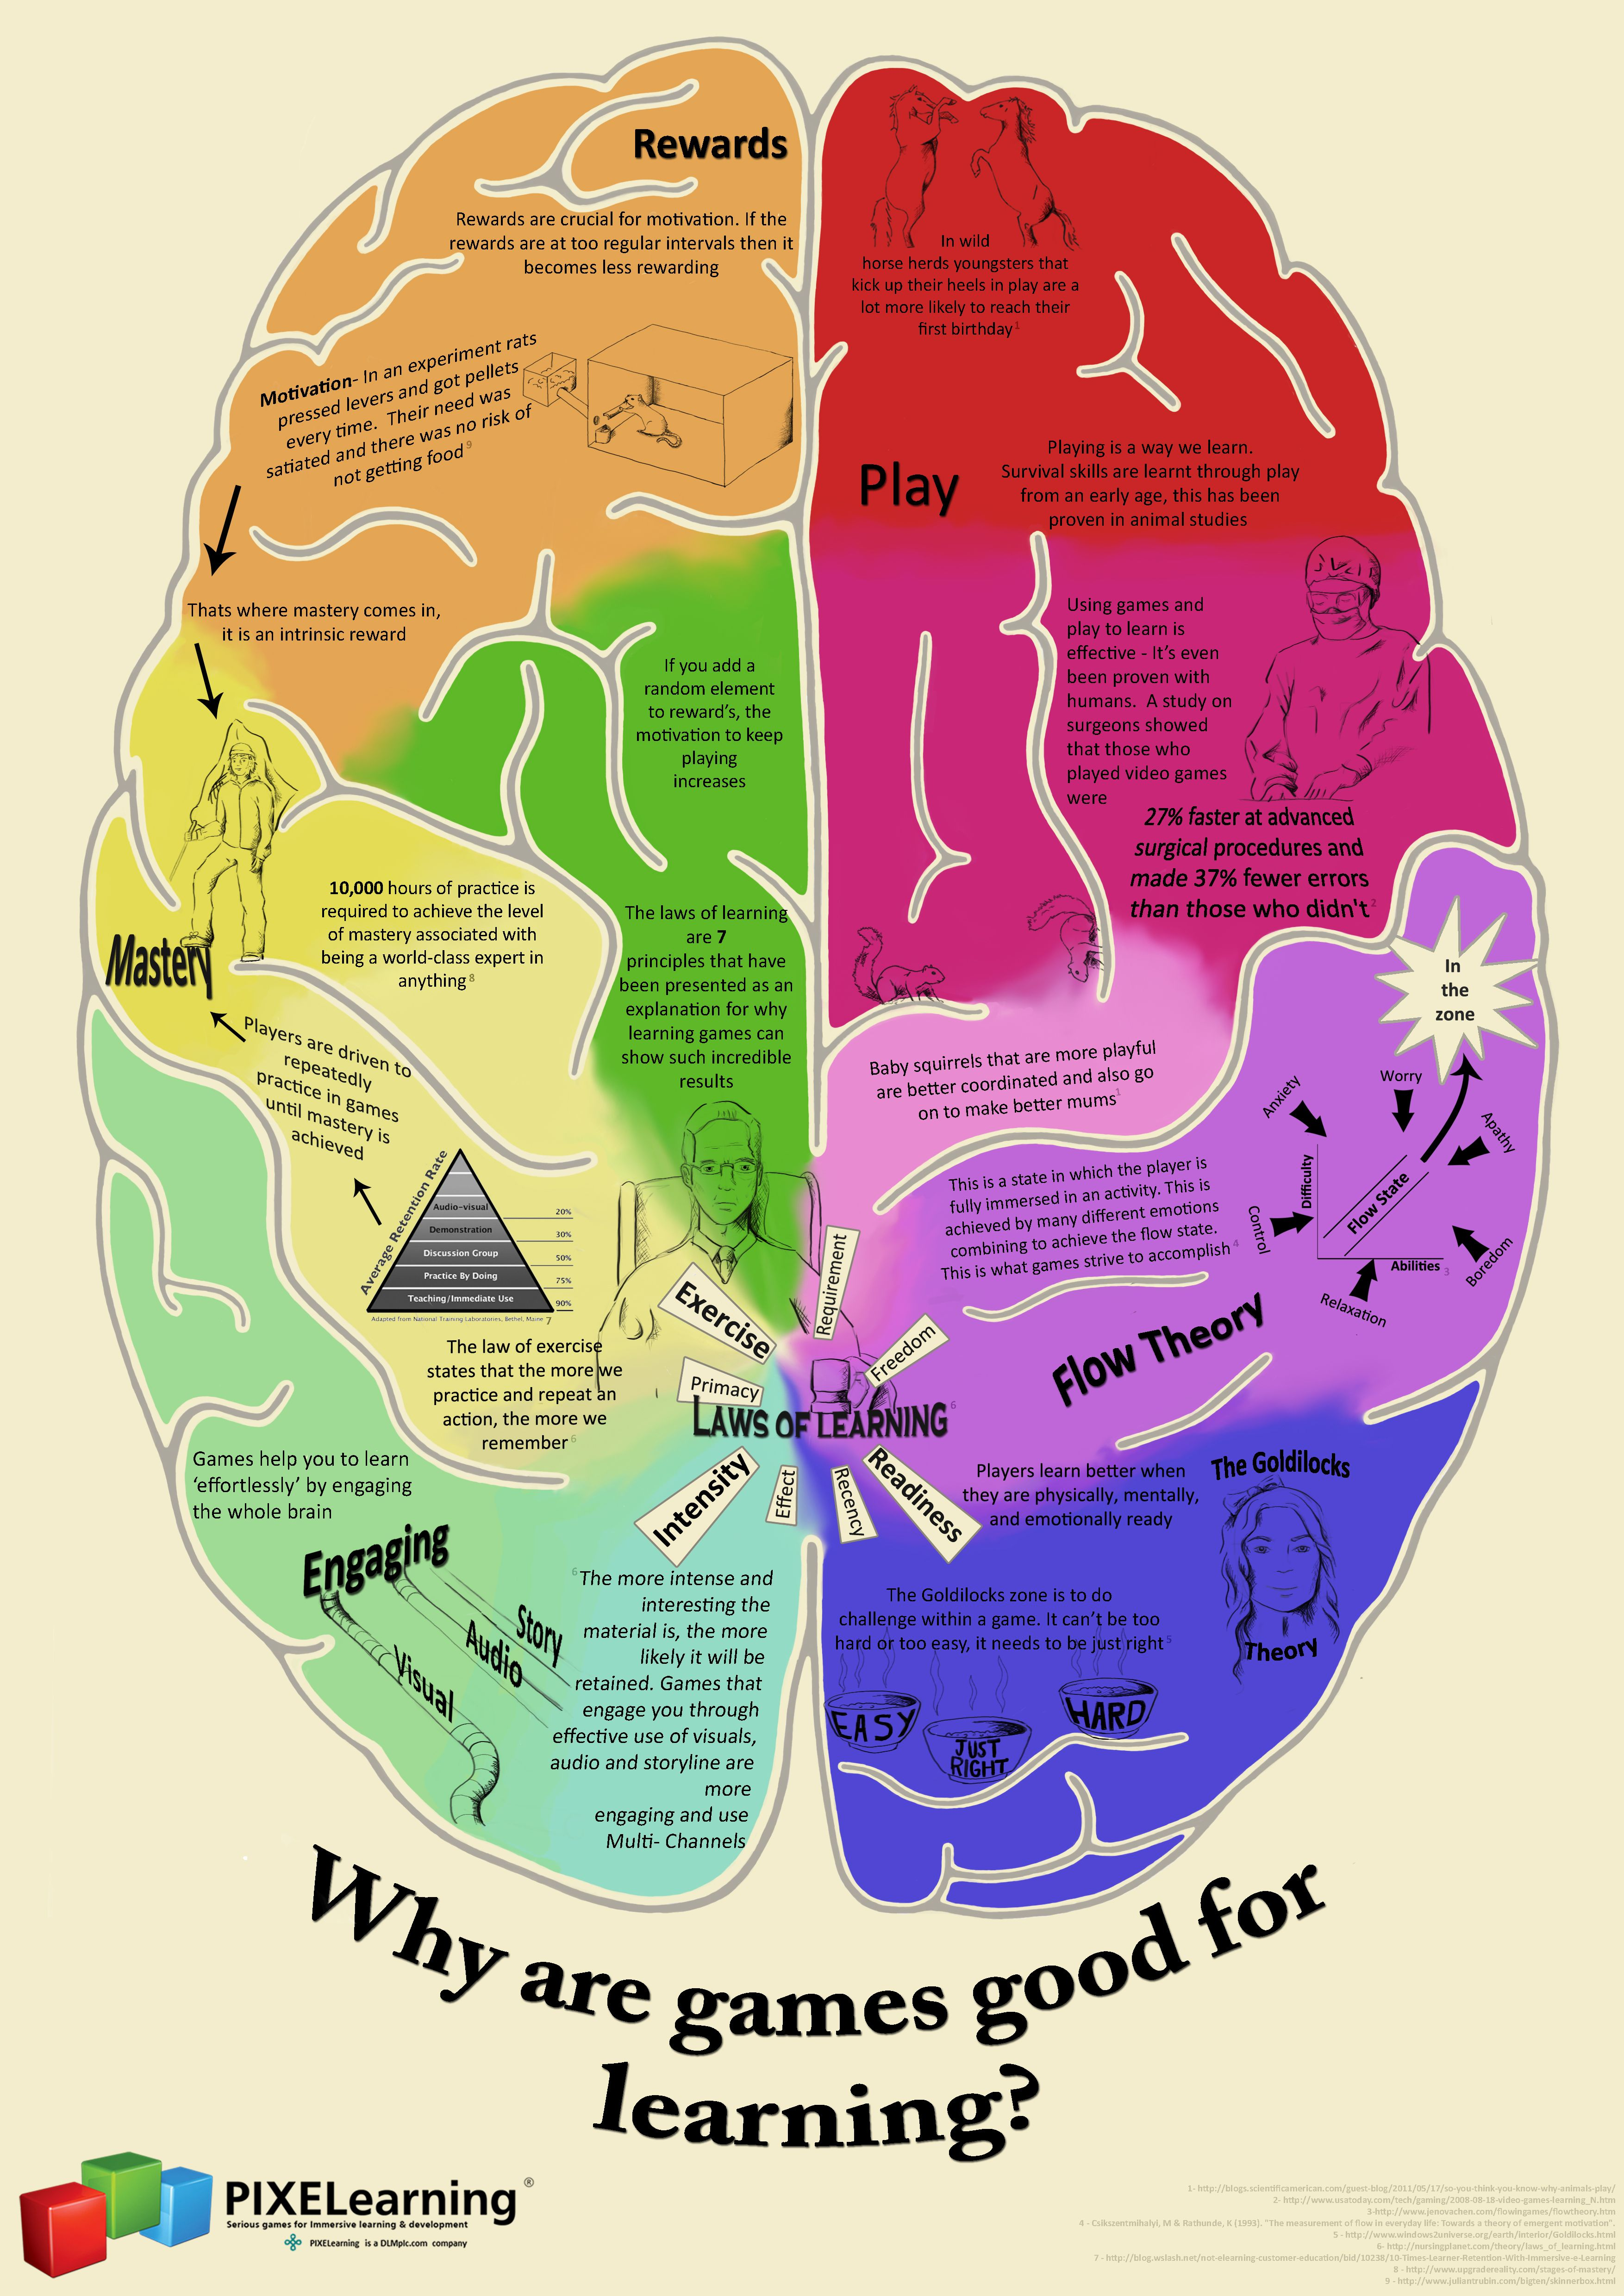 Just why are games good for learning? #infographic #gbl